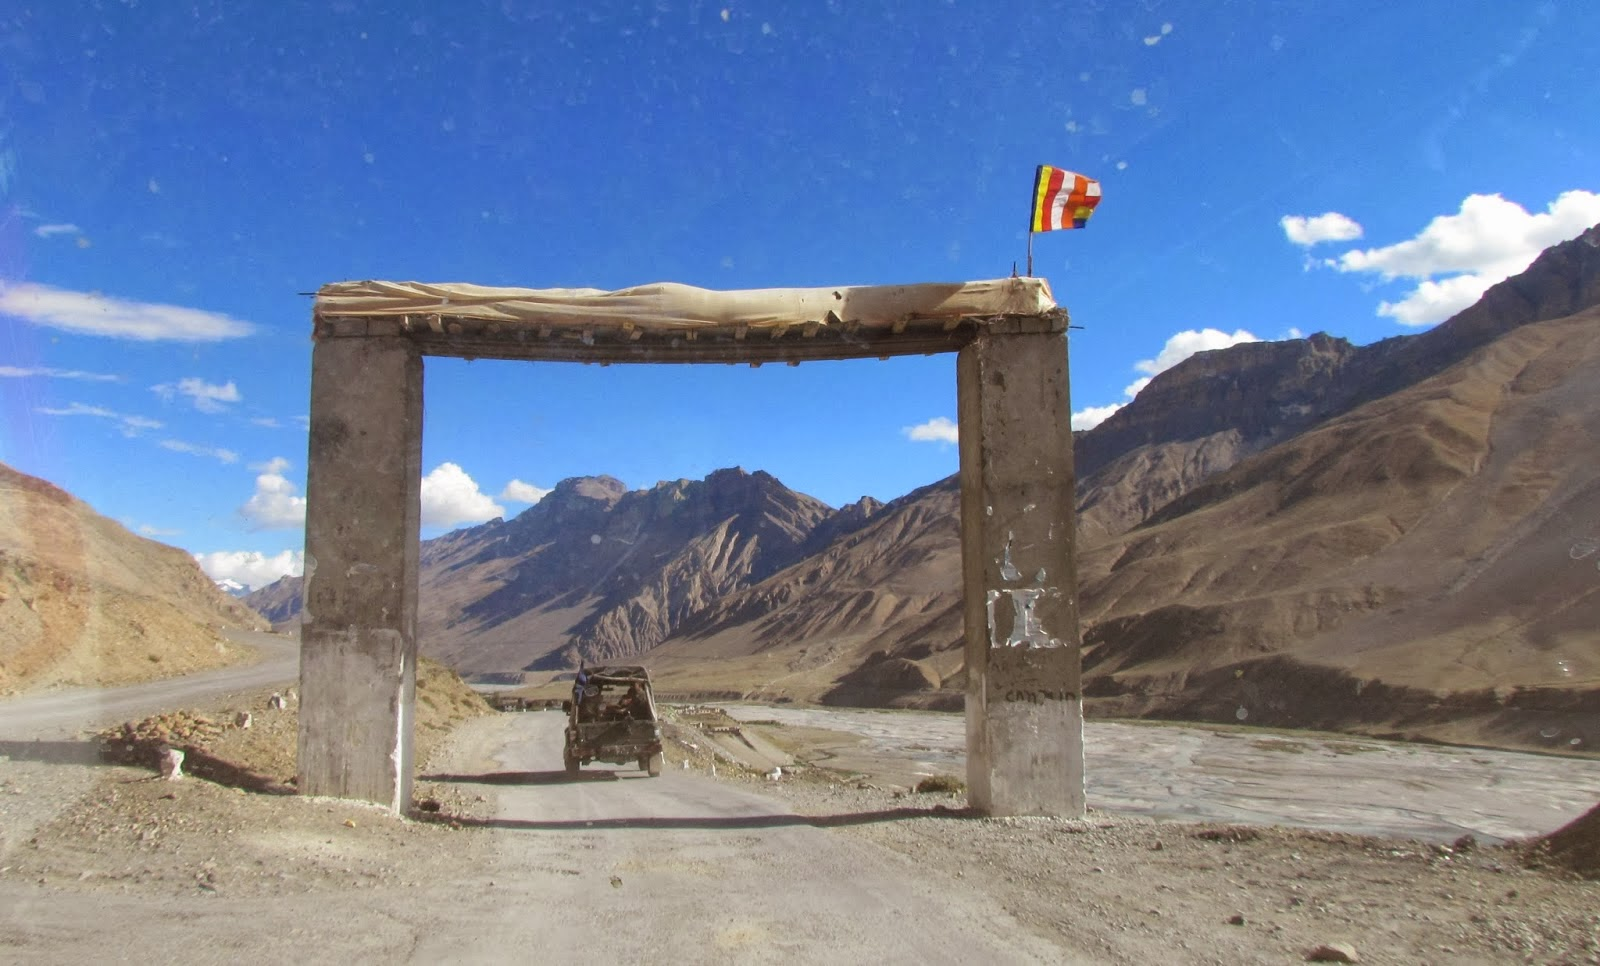 Photos of Spiti, Lahaul spiti valley